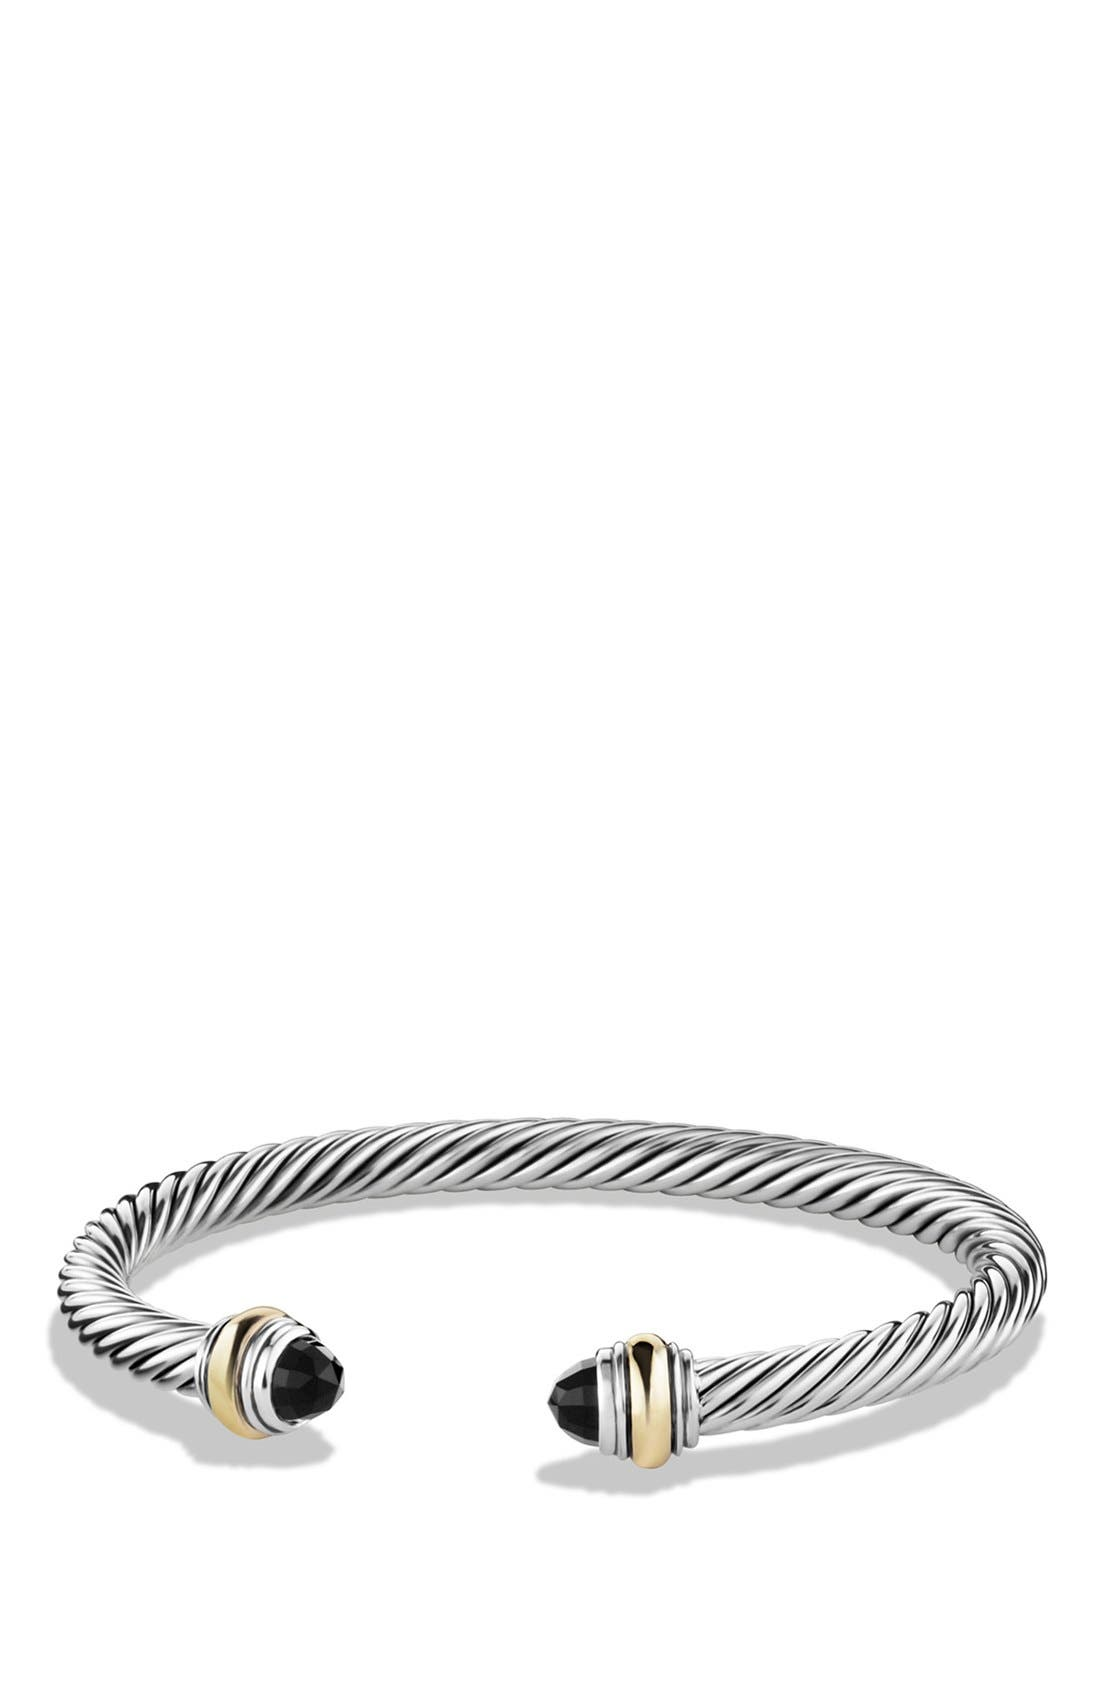 DAVID YURMAN, Cable Classics Bracelet with Semiprecious Stones & 14K Gold Accent, 5mm, Main thumbnail 1, color, BLACK ONYX